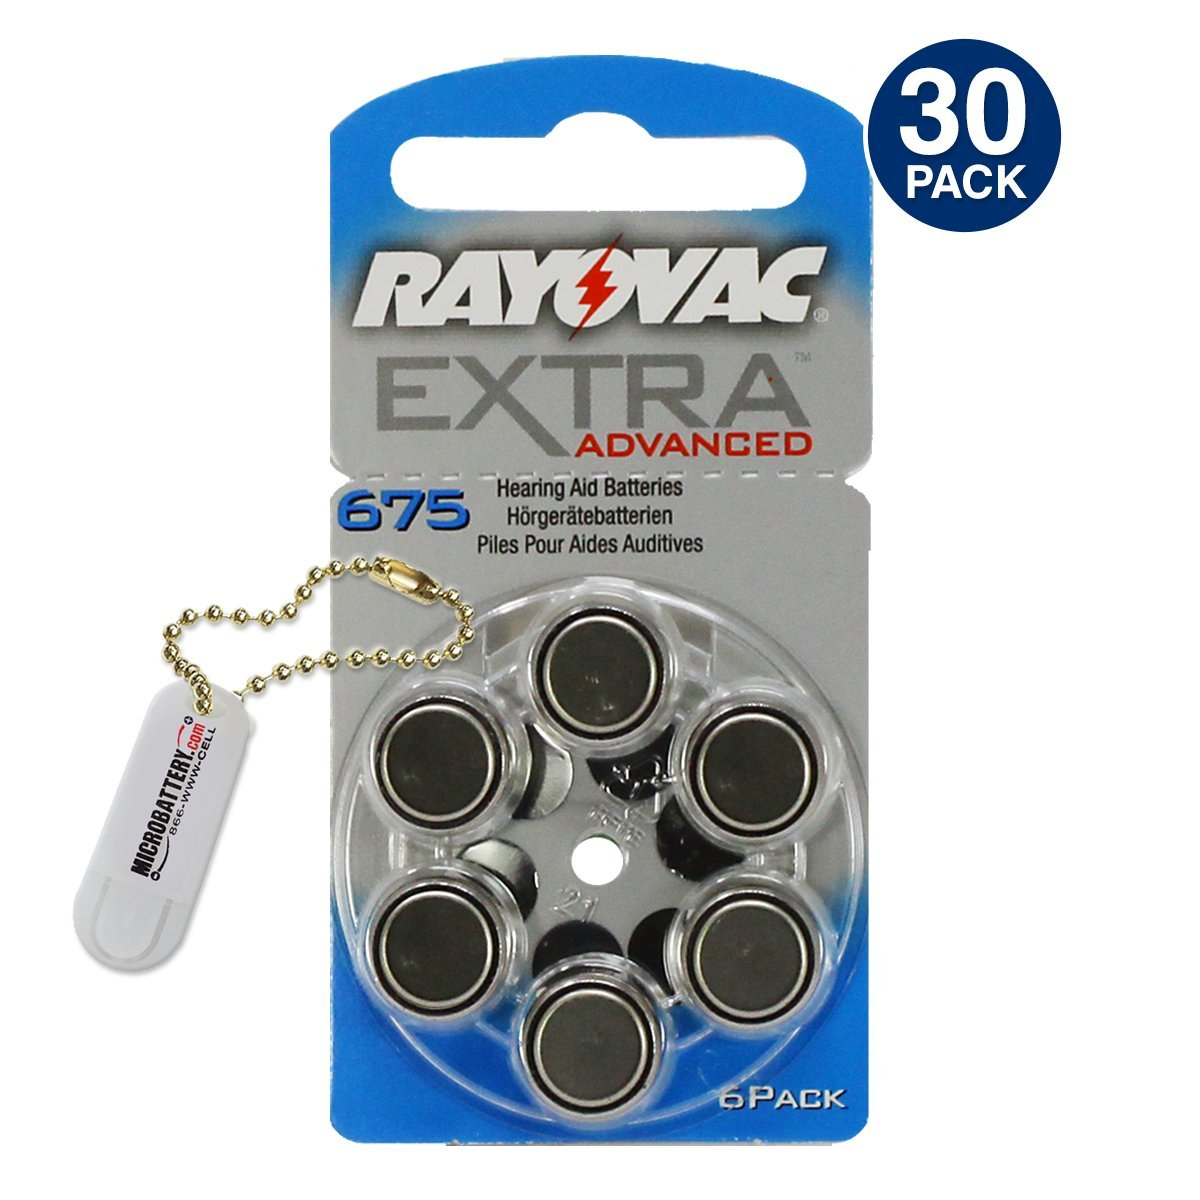 Rayovac Extra Advanced Hearing Aid Batteries Size 675 (5 Packs) (30 Batteries) + Keychain